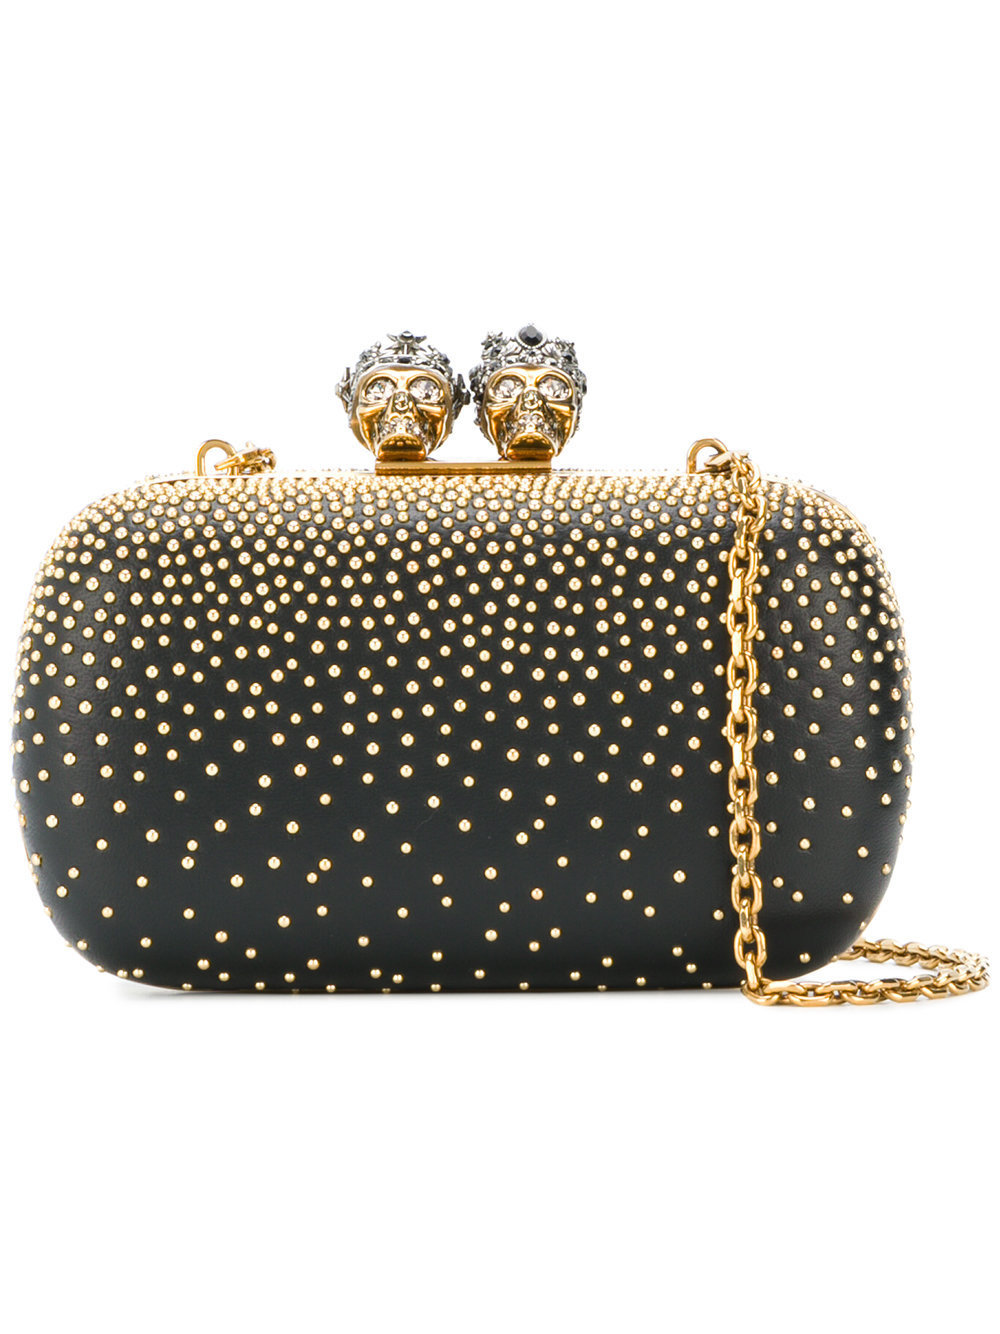 【関税送料込】alexander mcqueen Queen and King バッグ